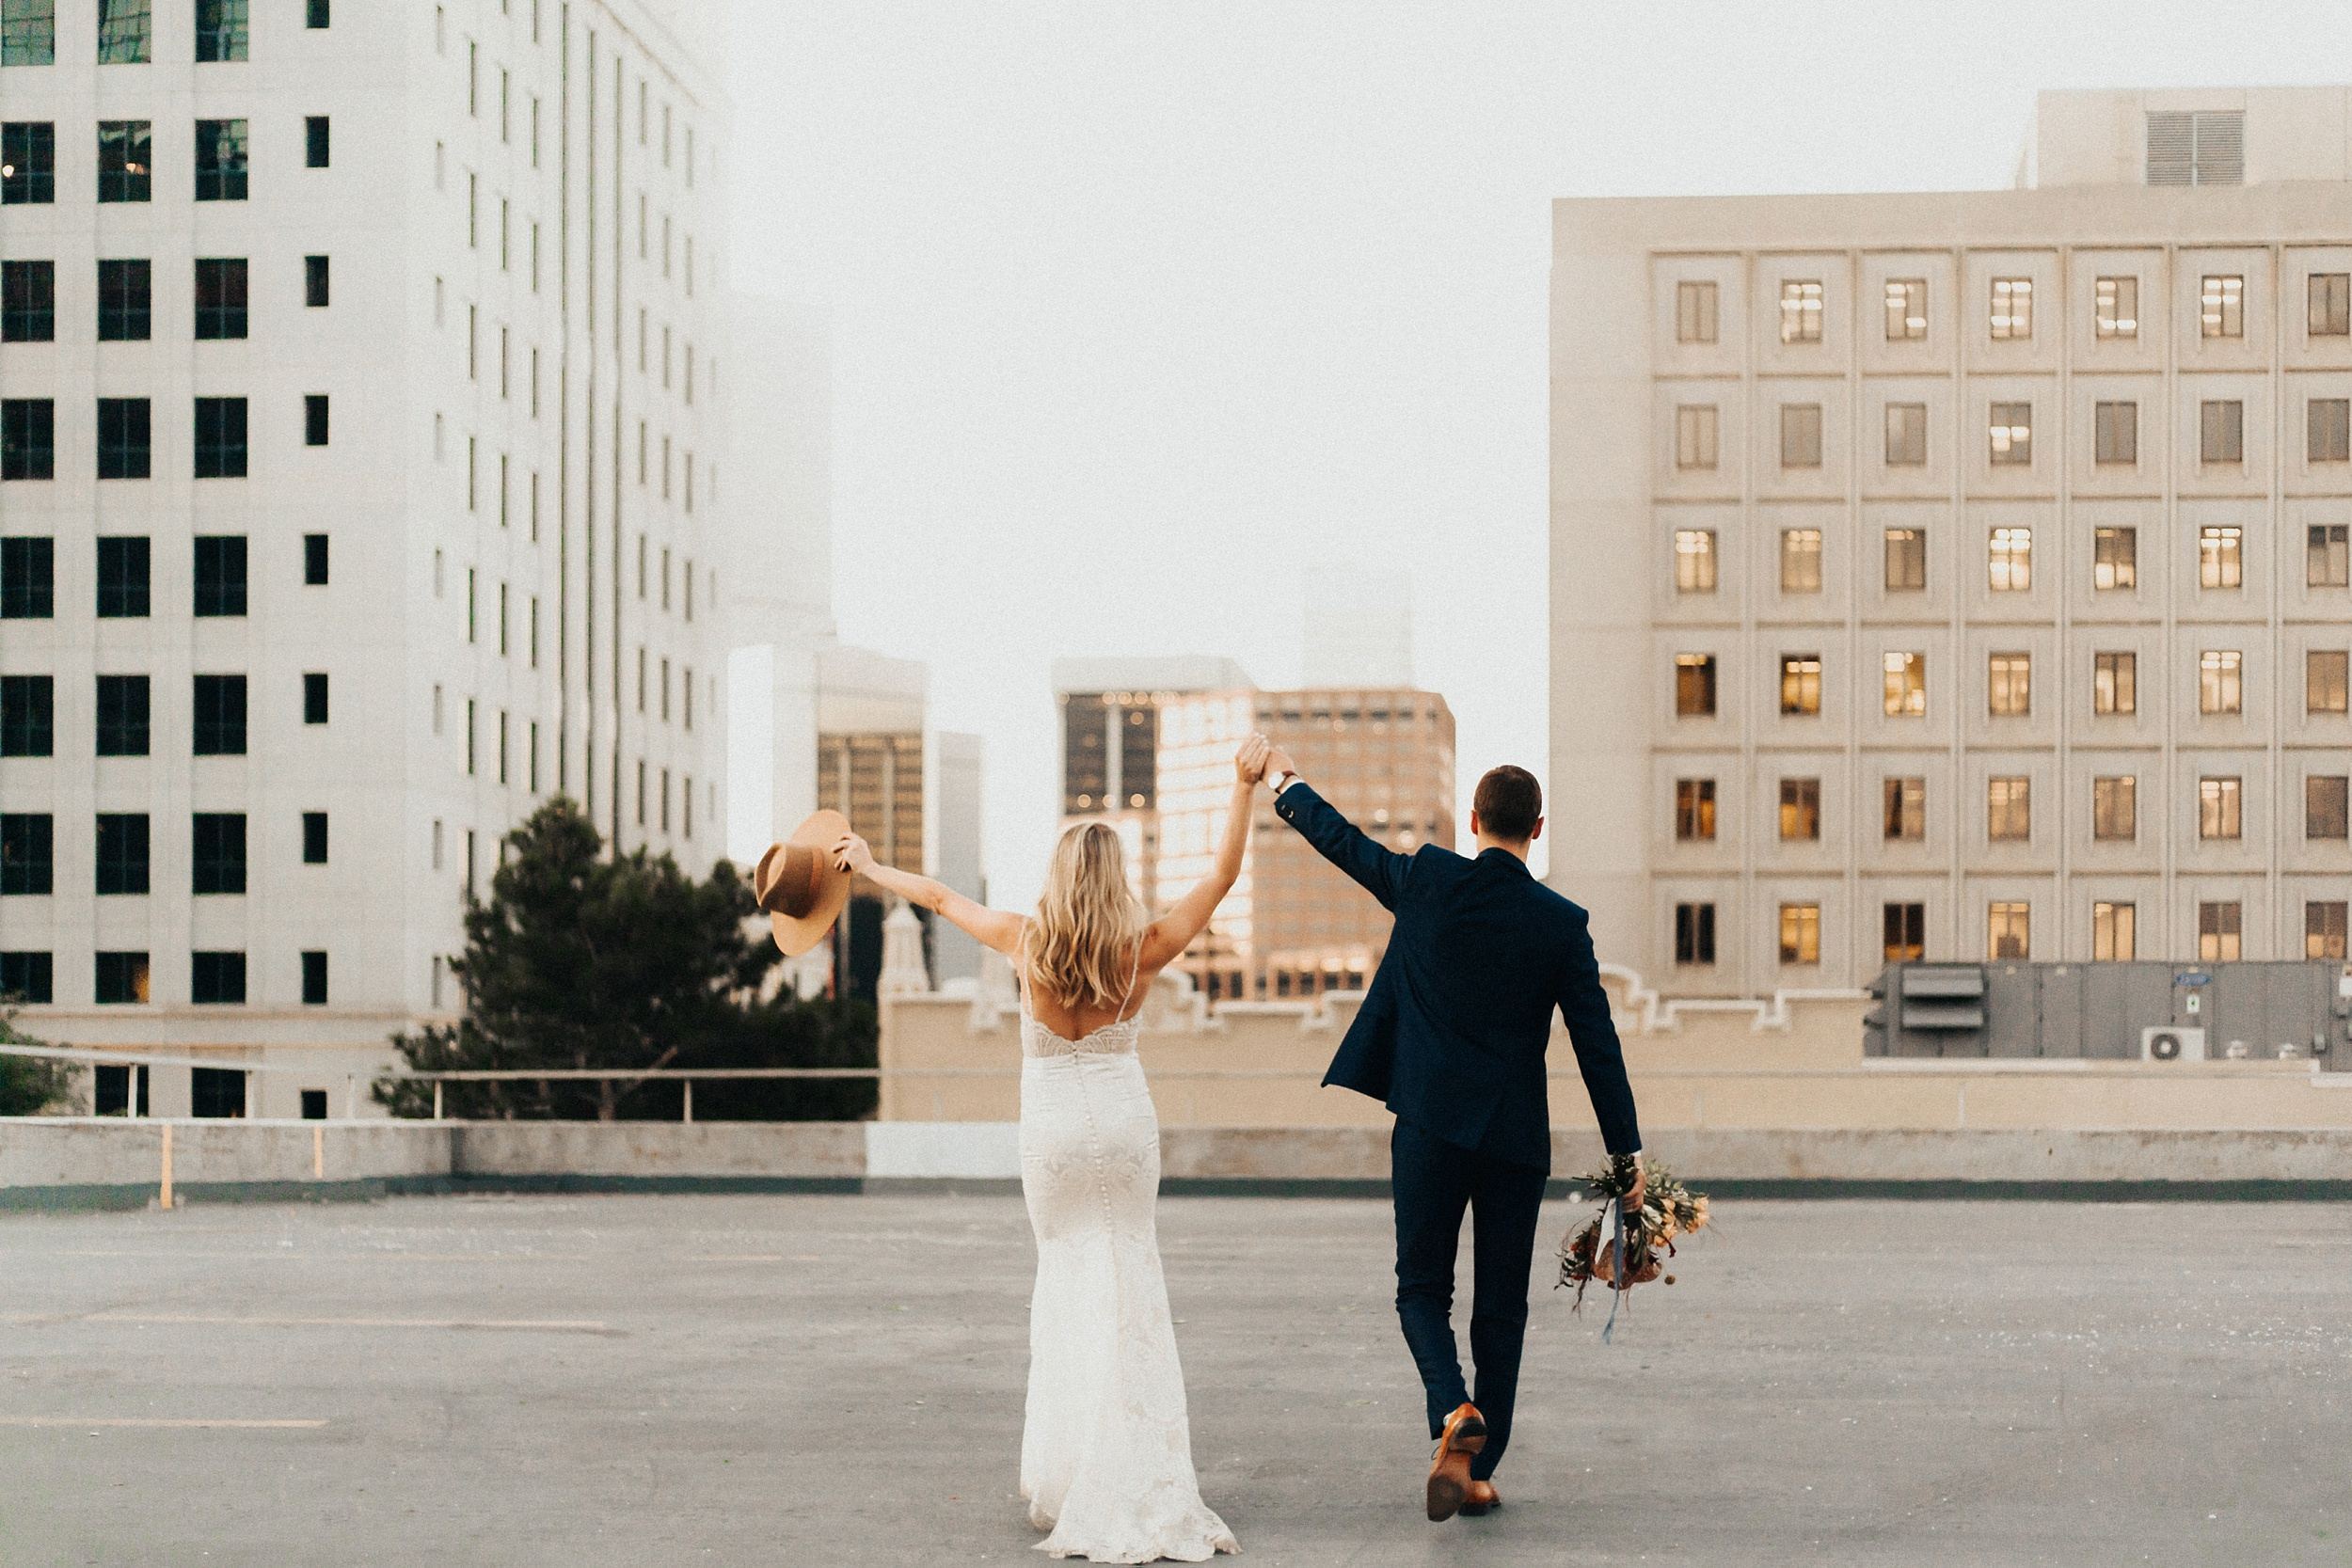 Bride and groom's rooftop elopement in downtown denver colorado.